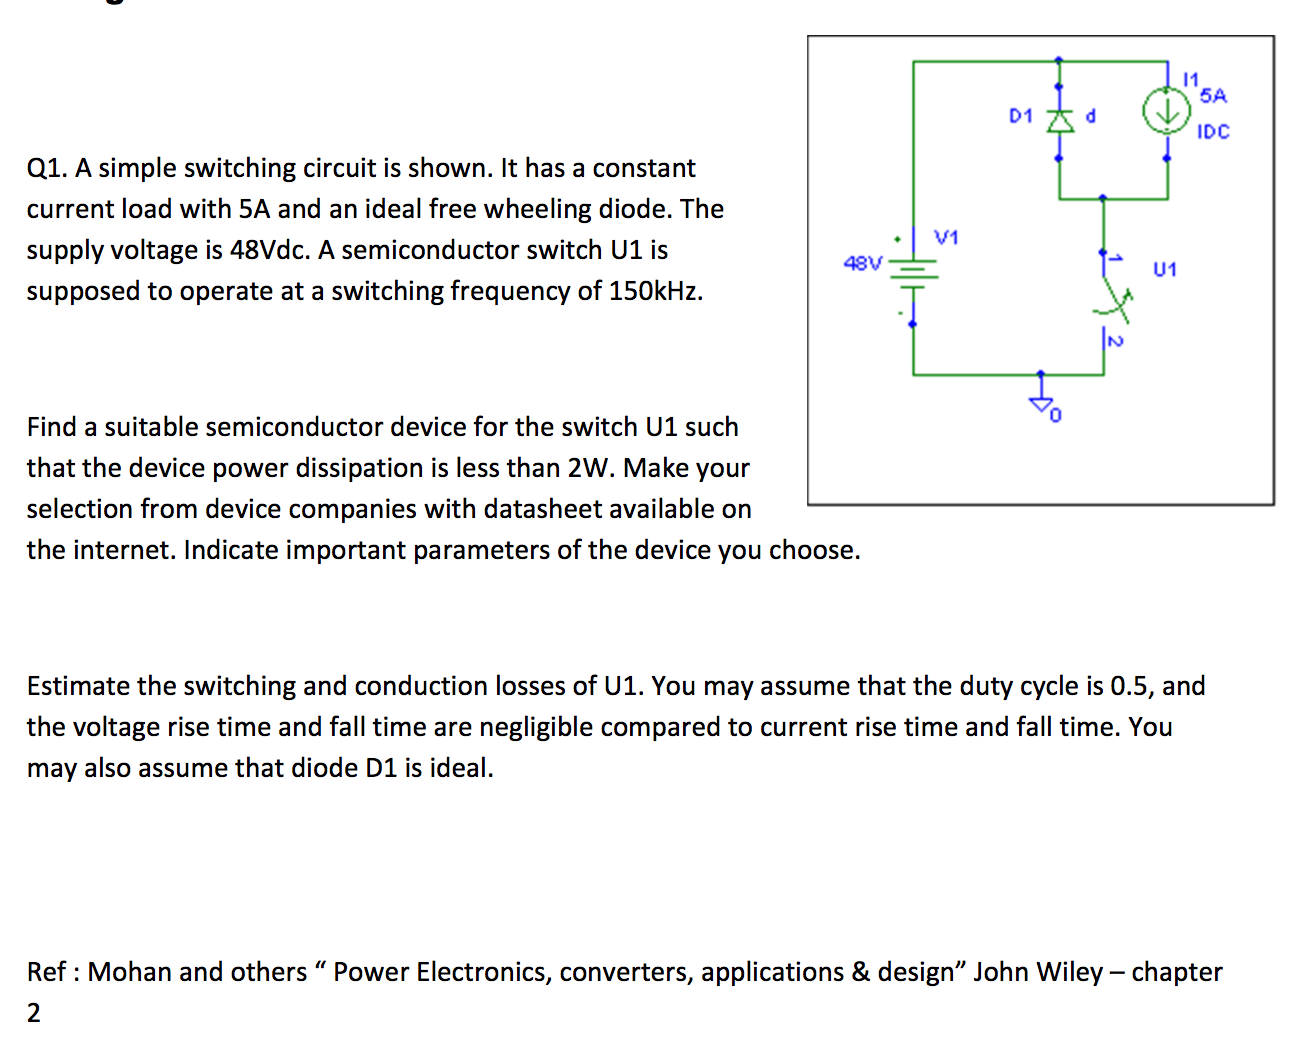 Solved: 5A D1 DC Q1. A Simple Switching Circuit Is Shown ...